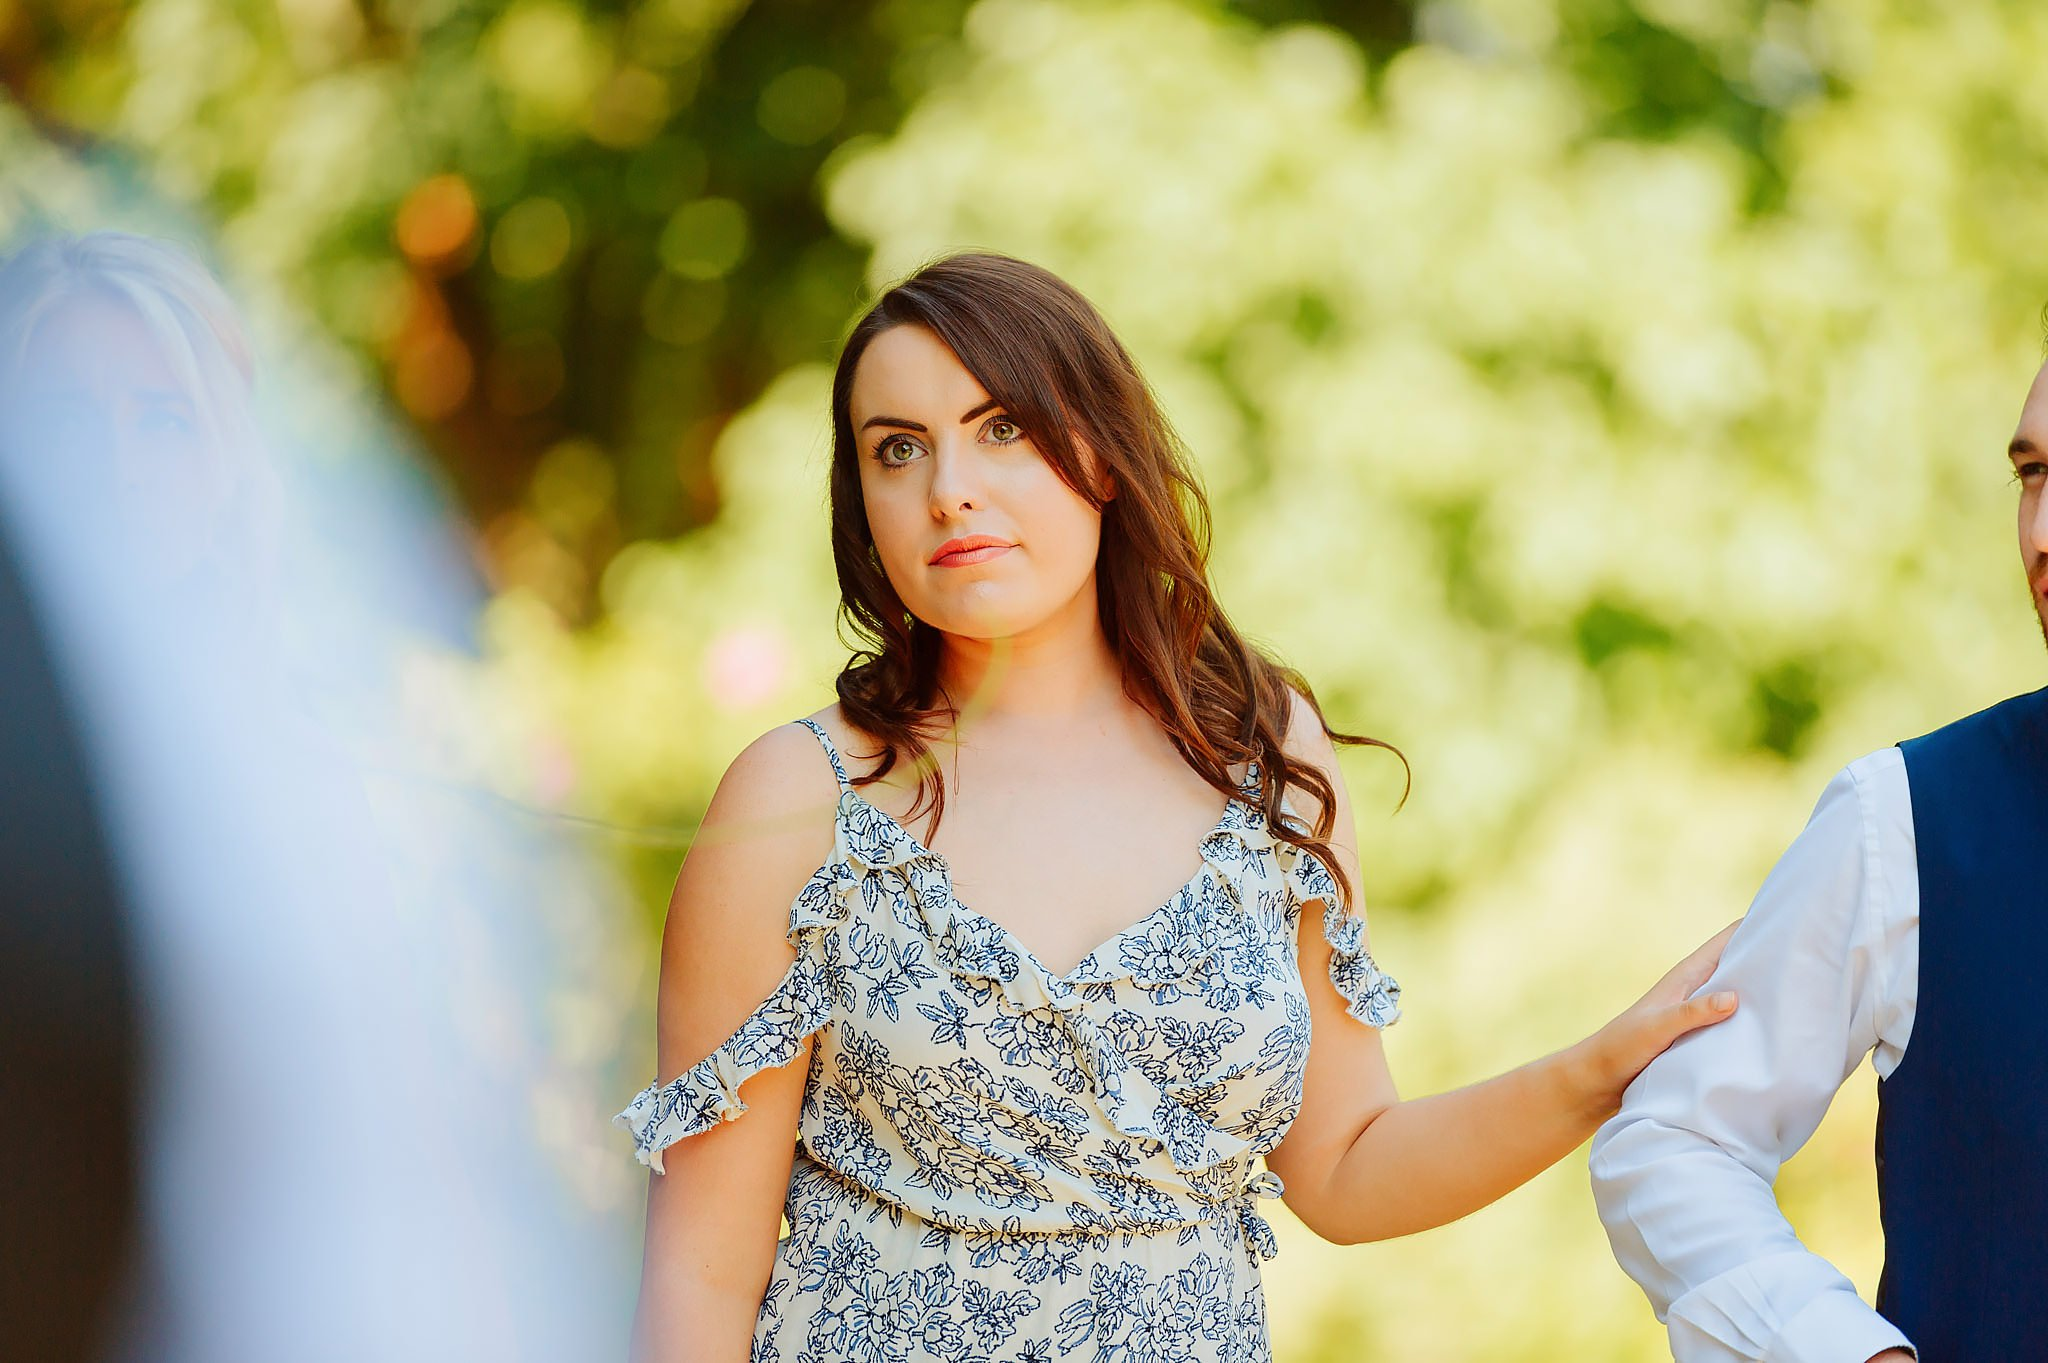 Wedding photography at Hellens Manor in Herefordshire, West Midlands | Shelley + Ian 56